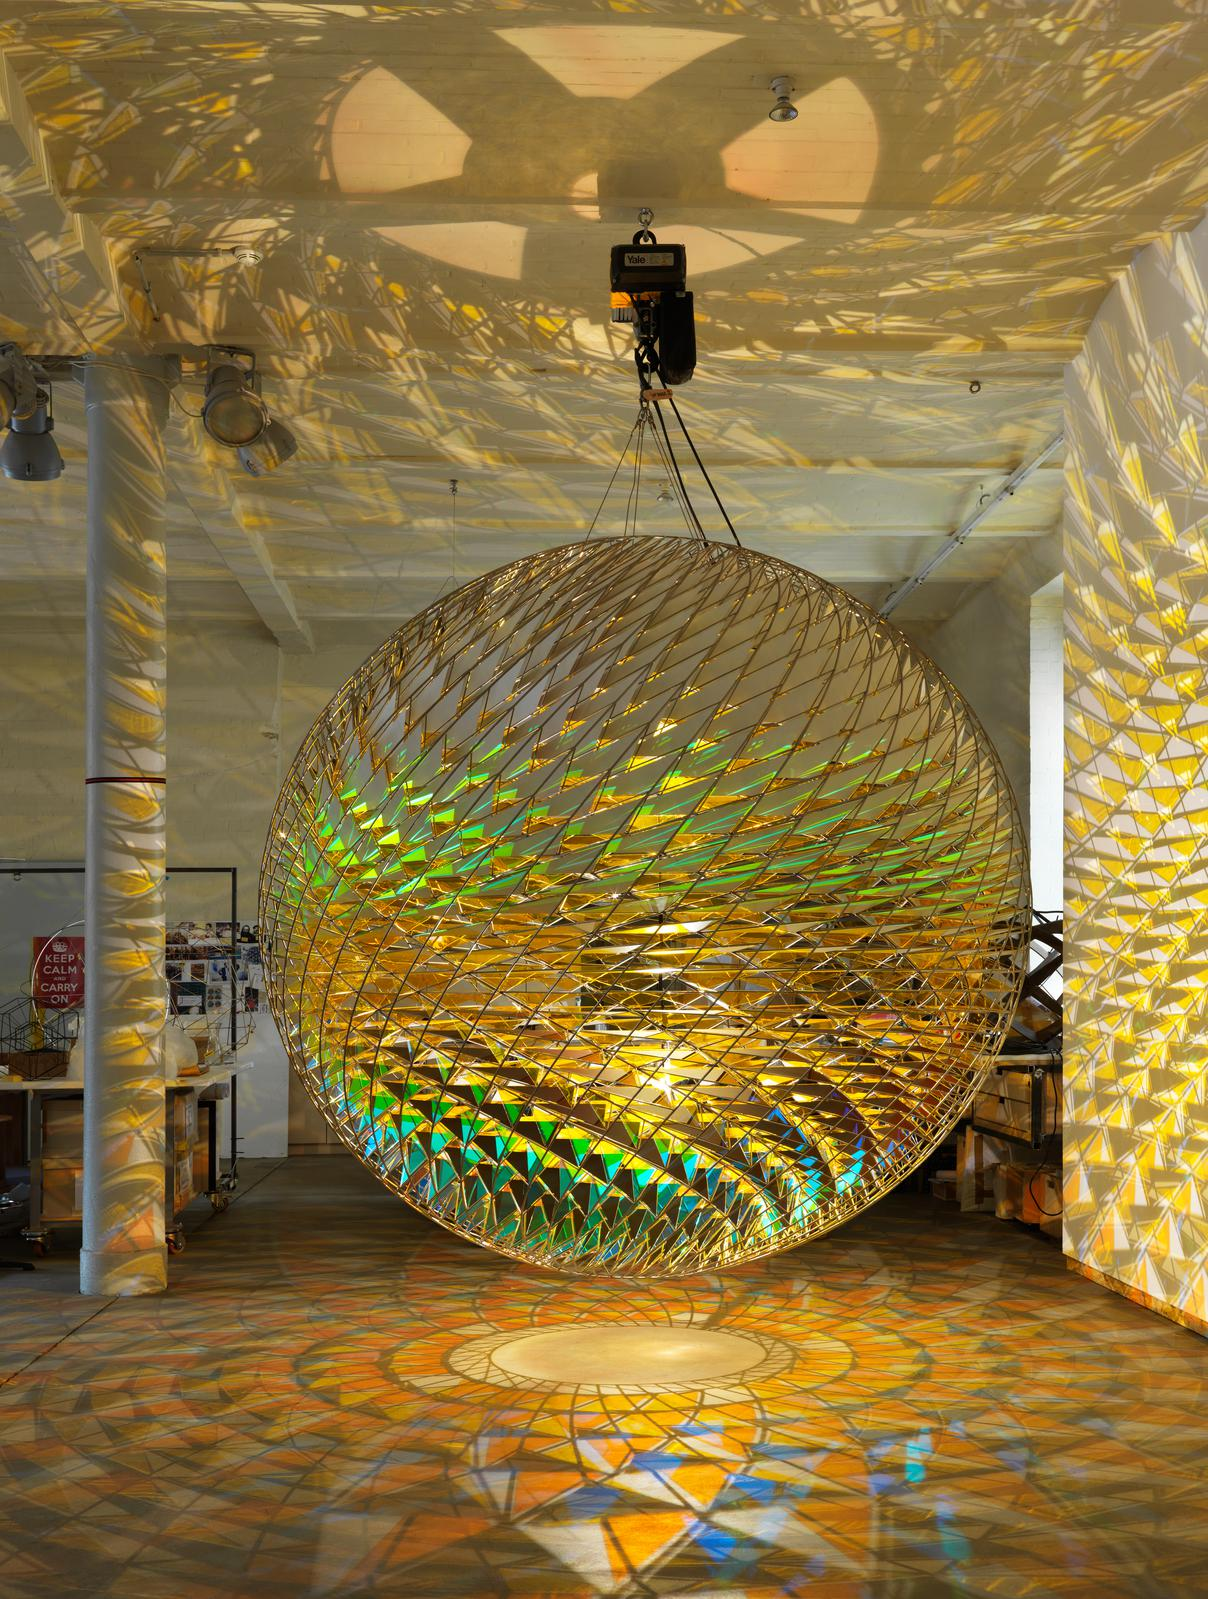 Spherical Space, Olafur Eliasson (2015)